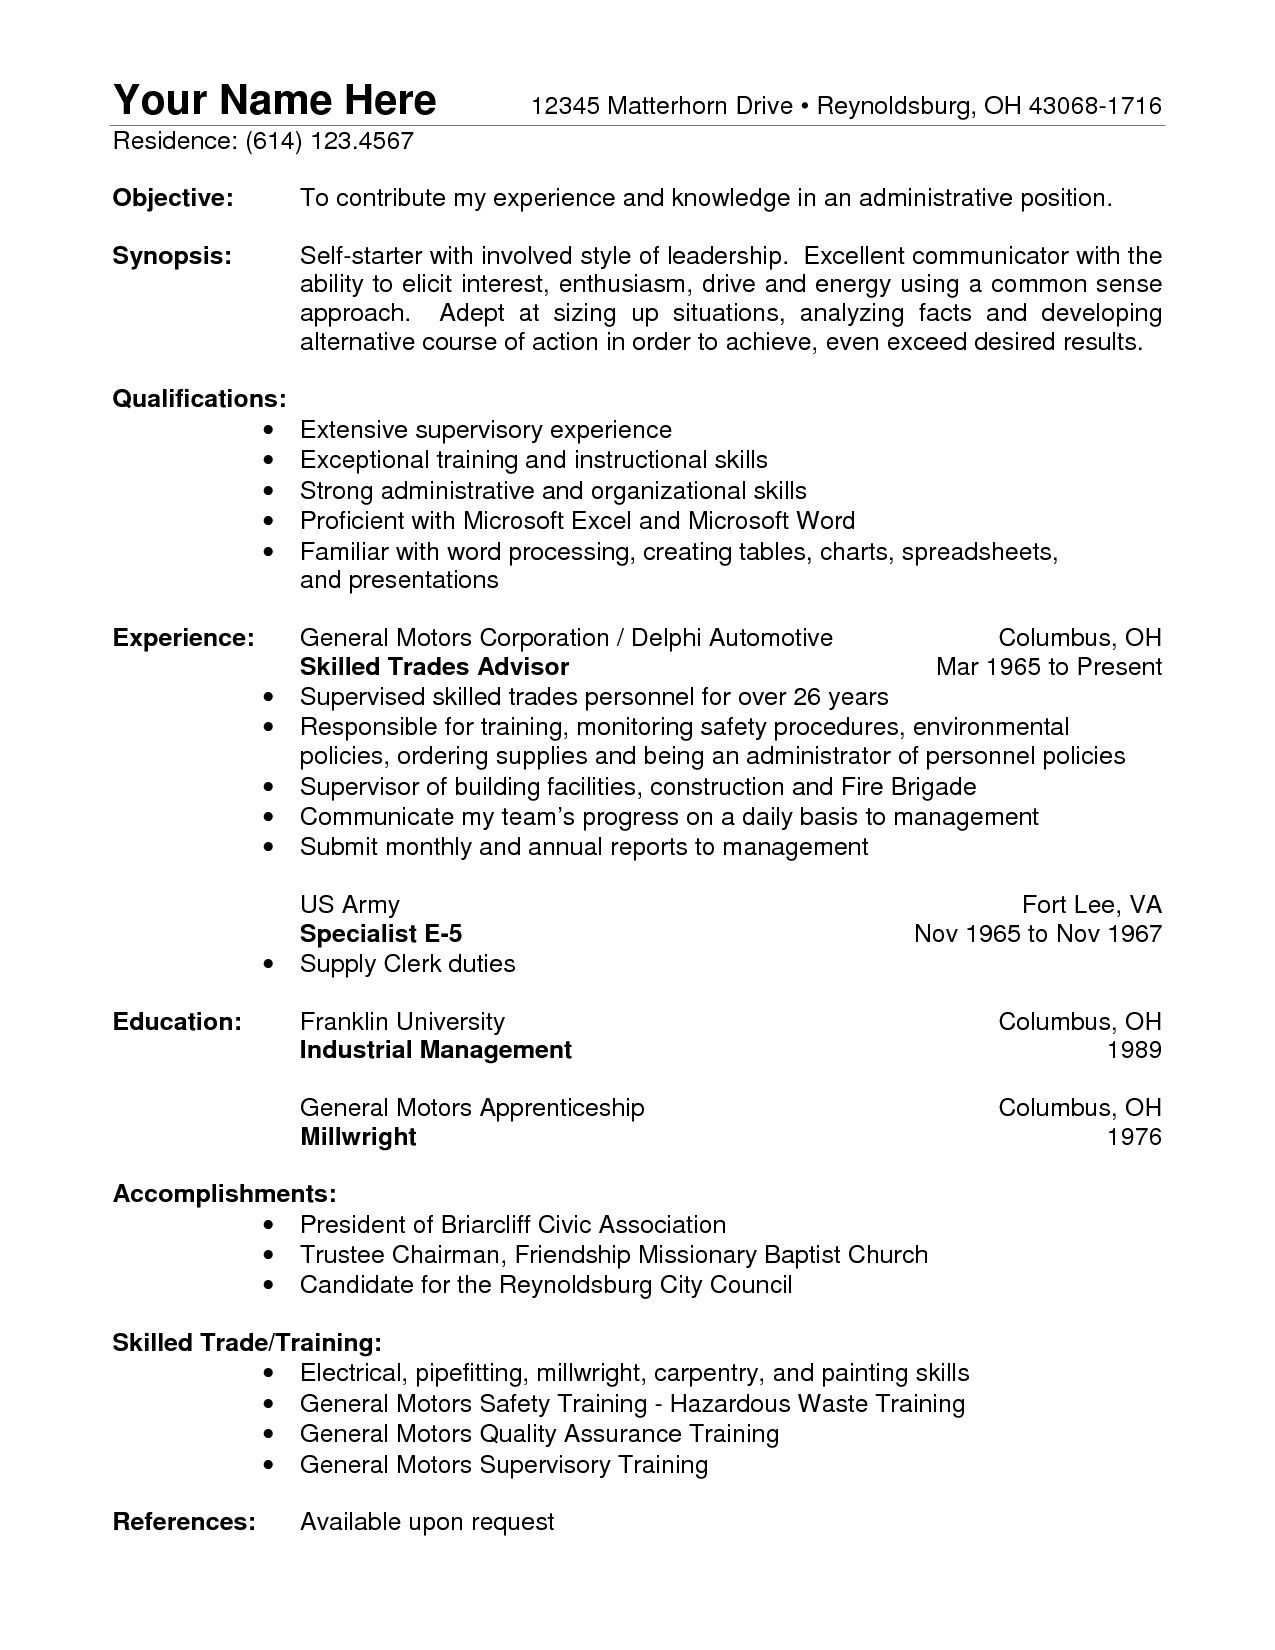 General Objectives For Resumes Warehouse Resume Template  Warehouse Resume Template We Provide